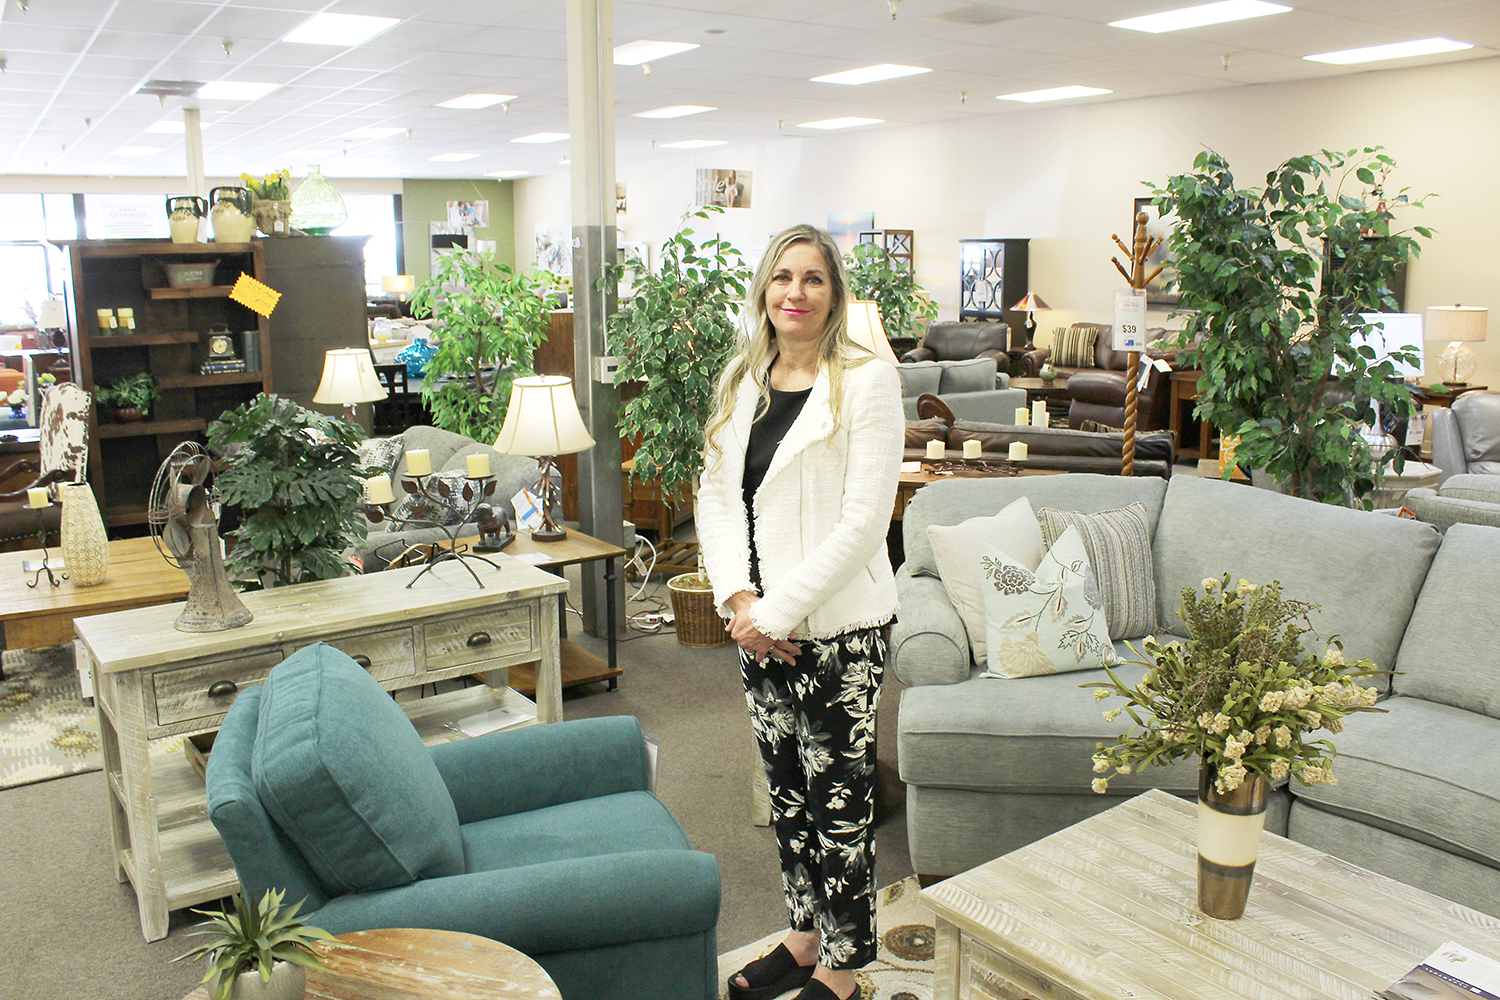 Affordable Furniture Usa Has Something For Every Room In The House Let Manager Terry Van Ooyen And Her Team Help You Design Perfect